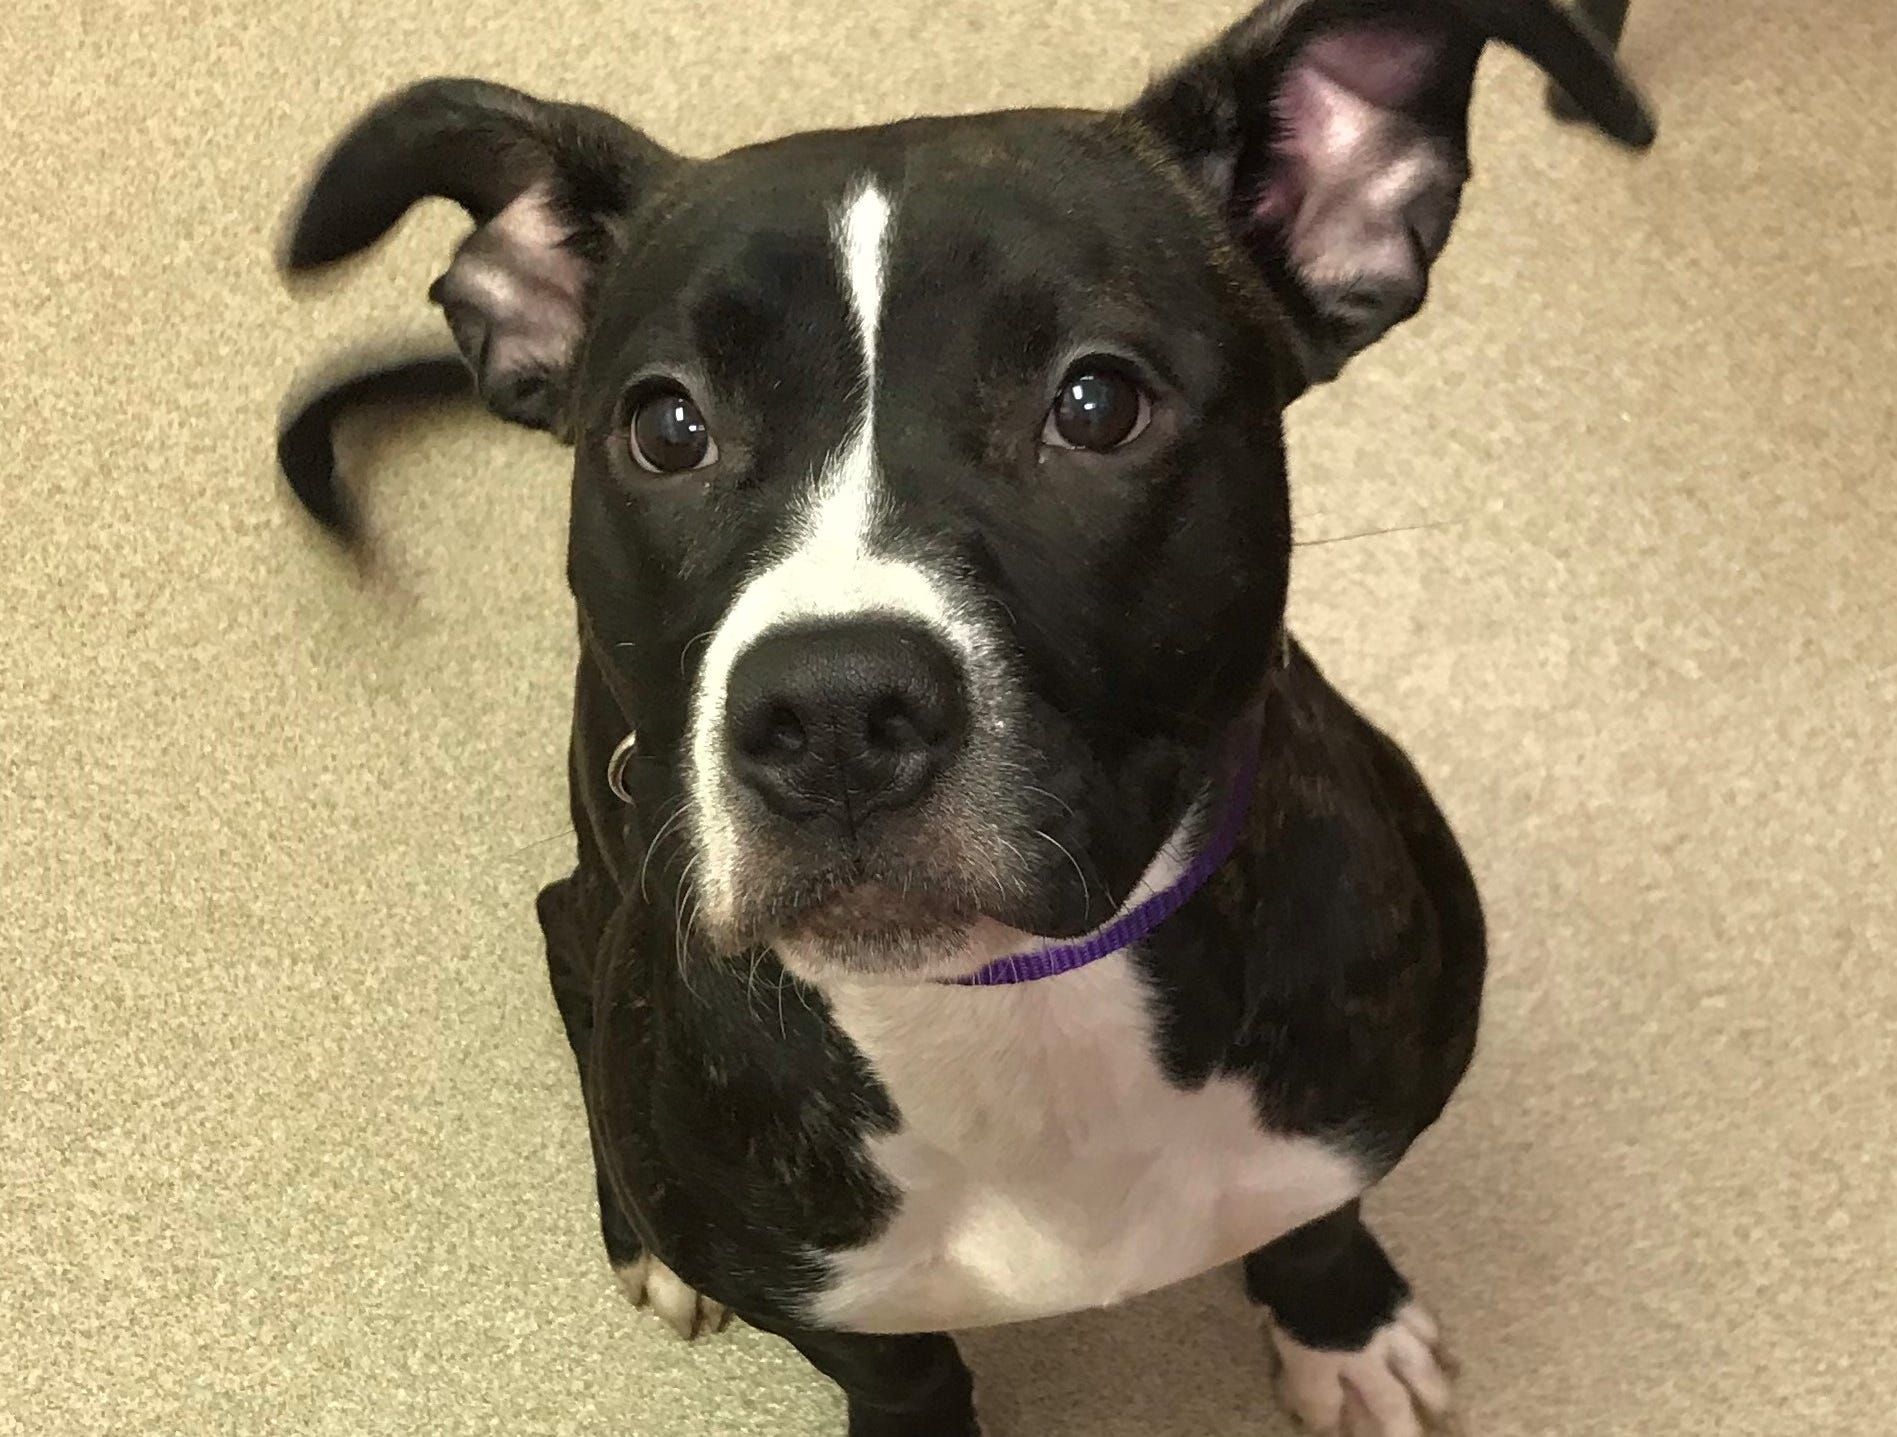 April, a 6-month-old mixed breed, has a lot of energy and is very curious. She is spayed.